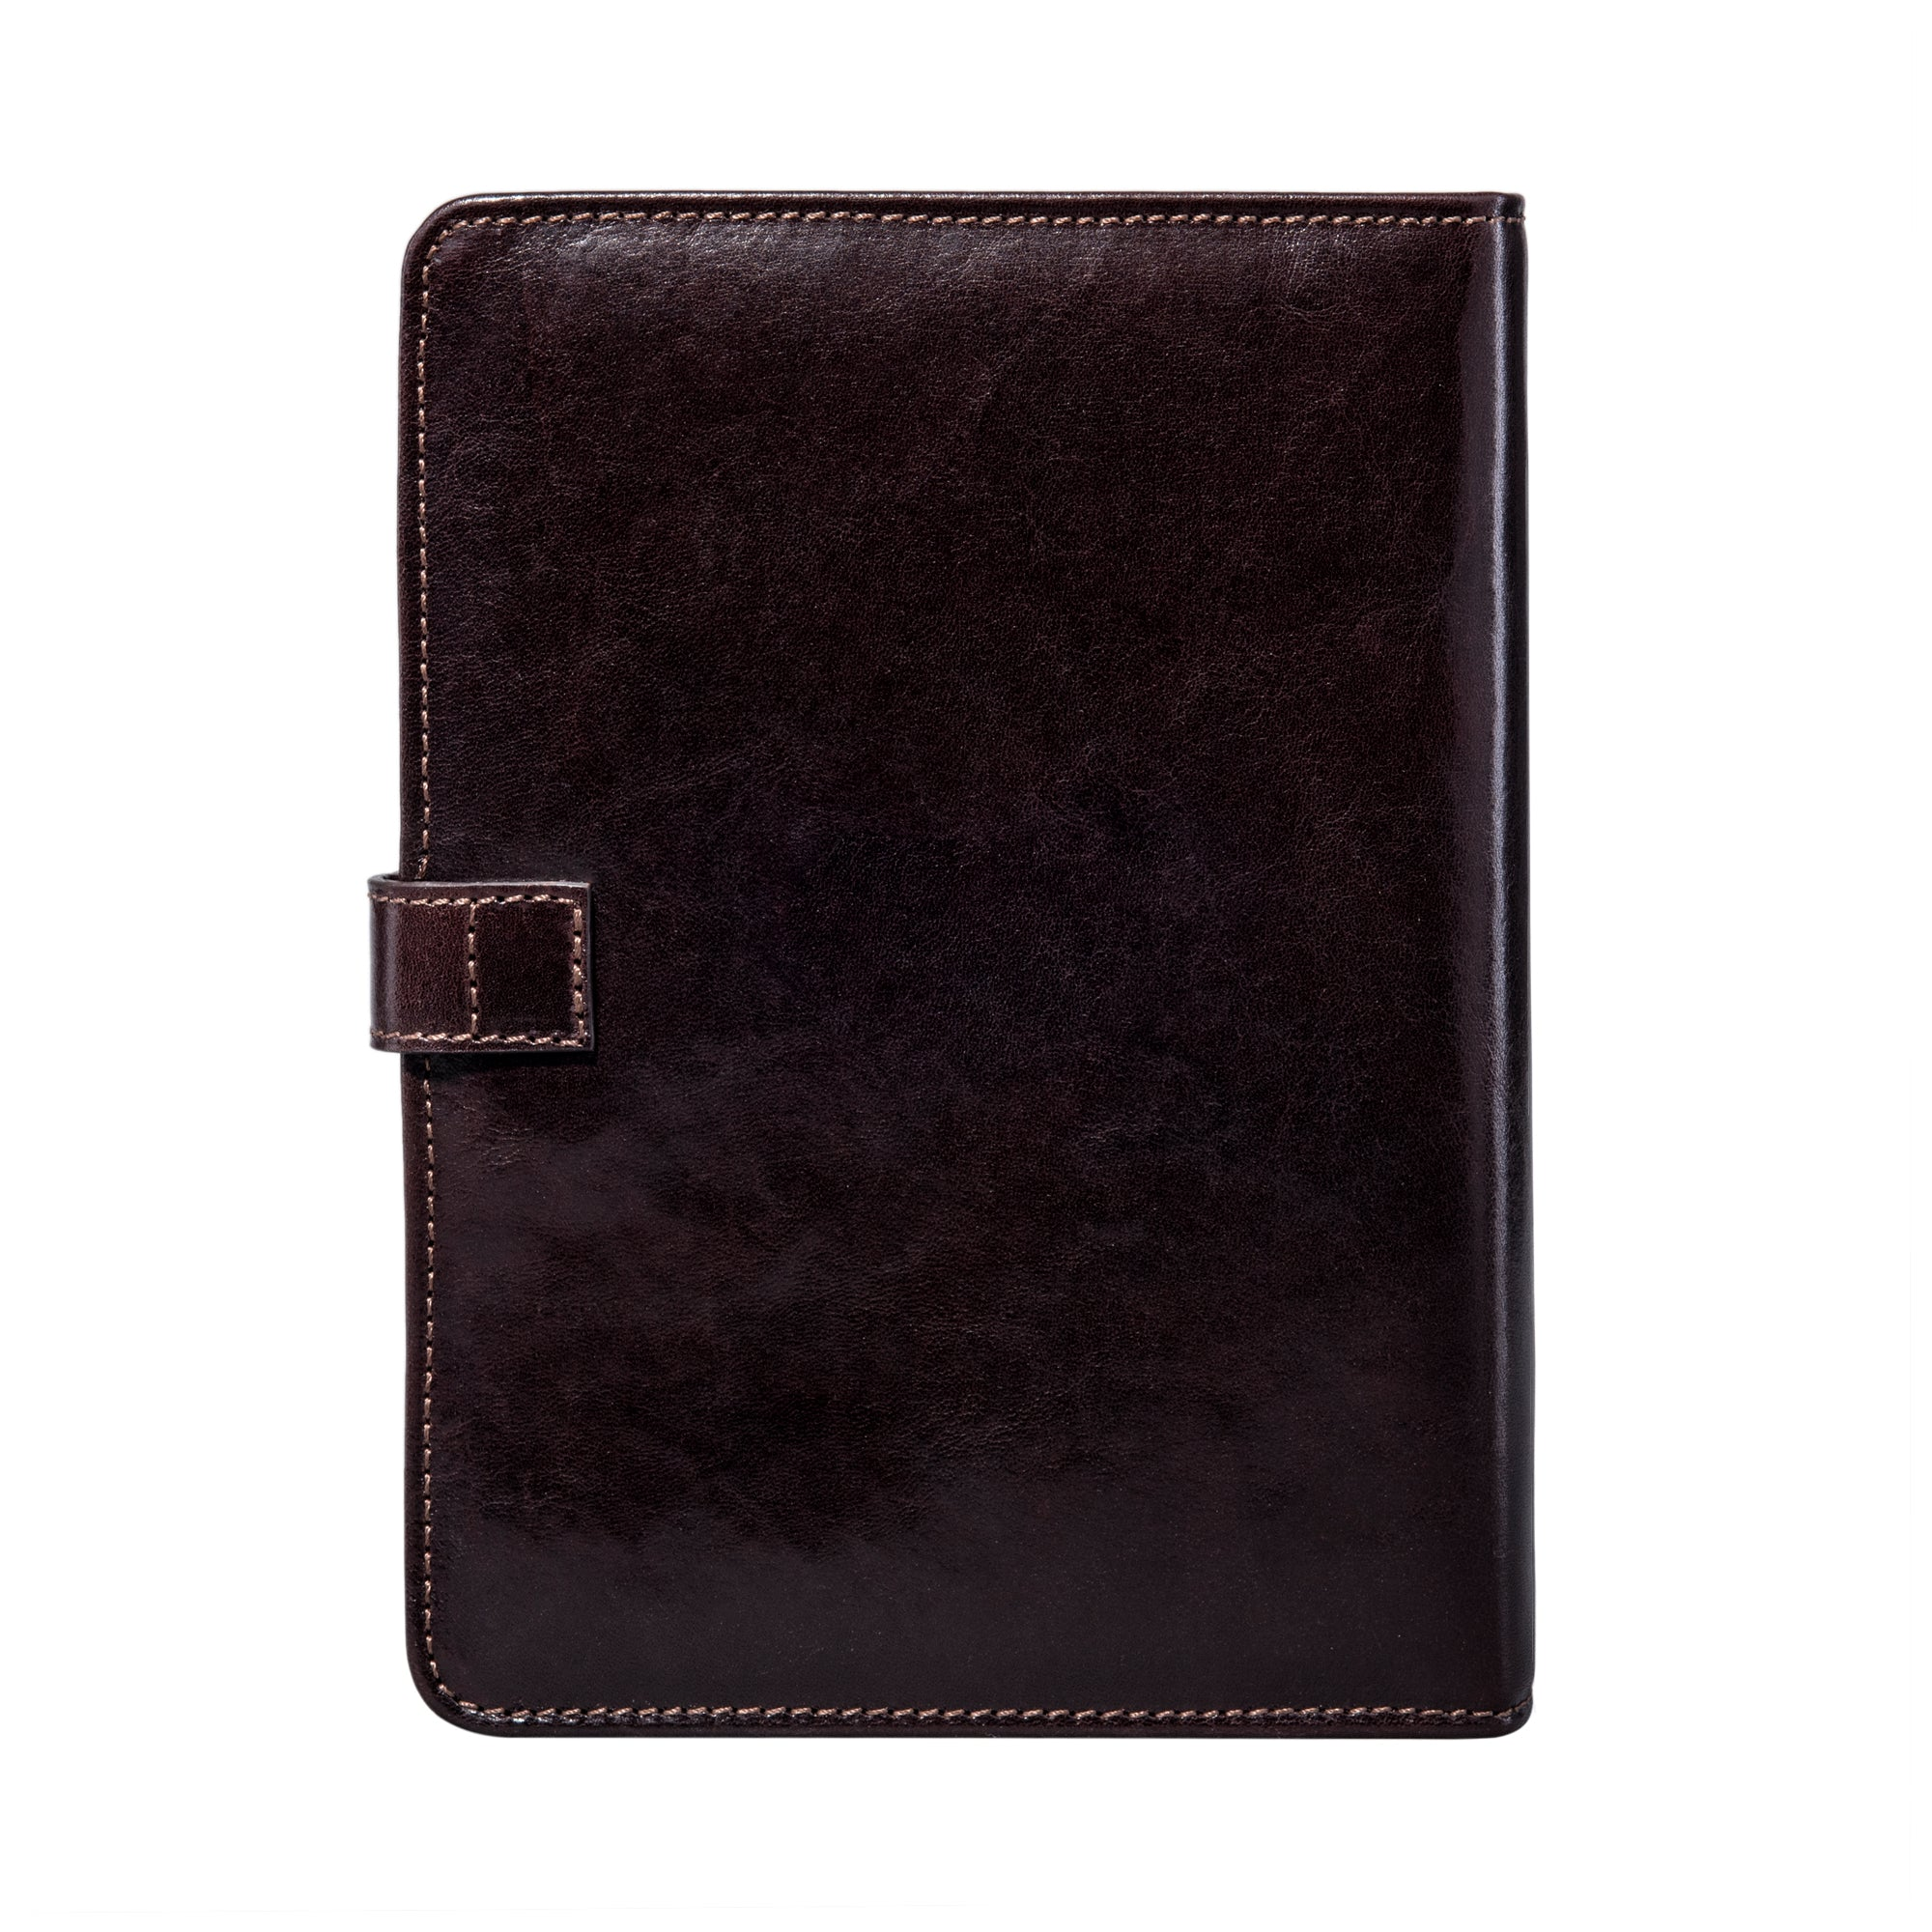 Image 4 of the Chocolate Leather Address book